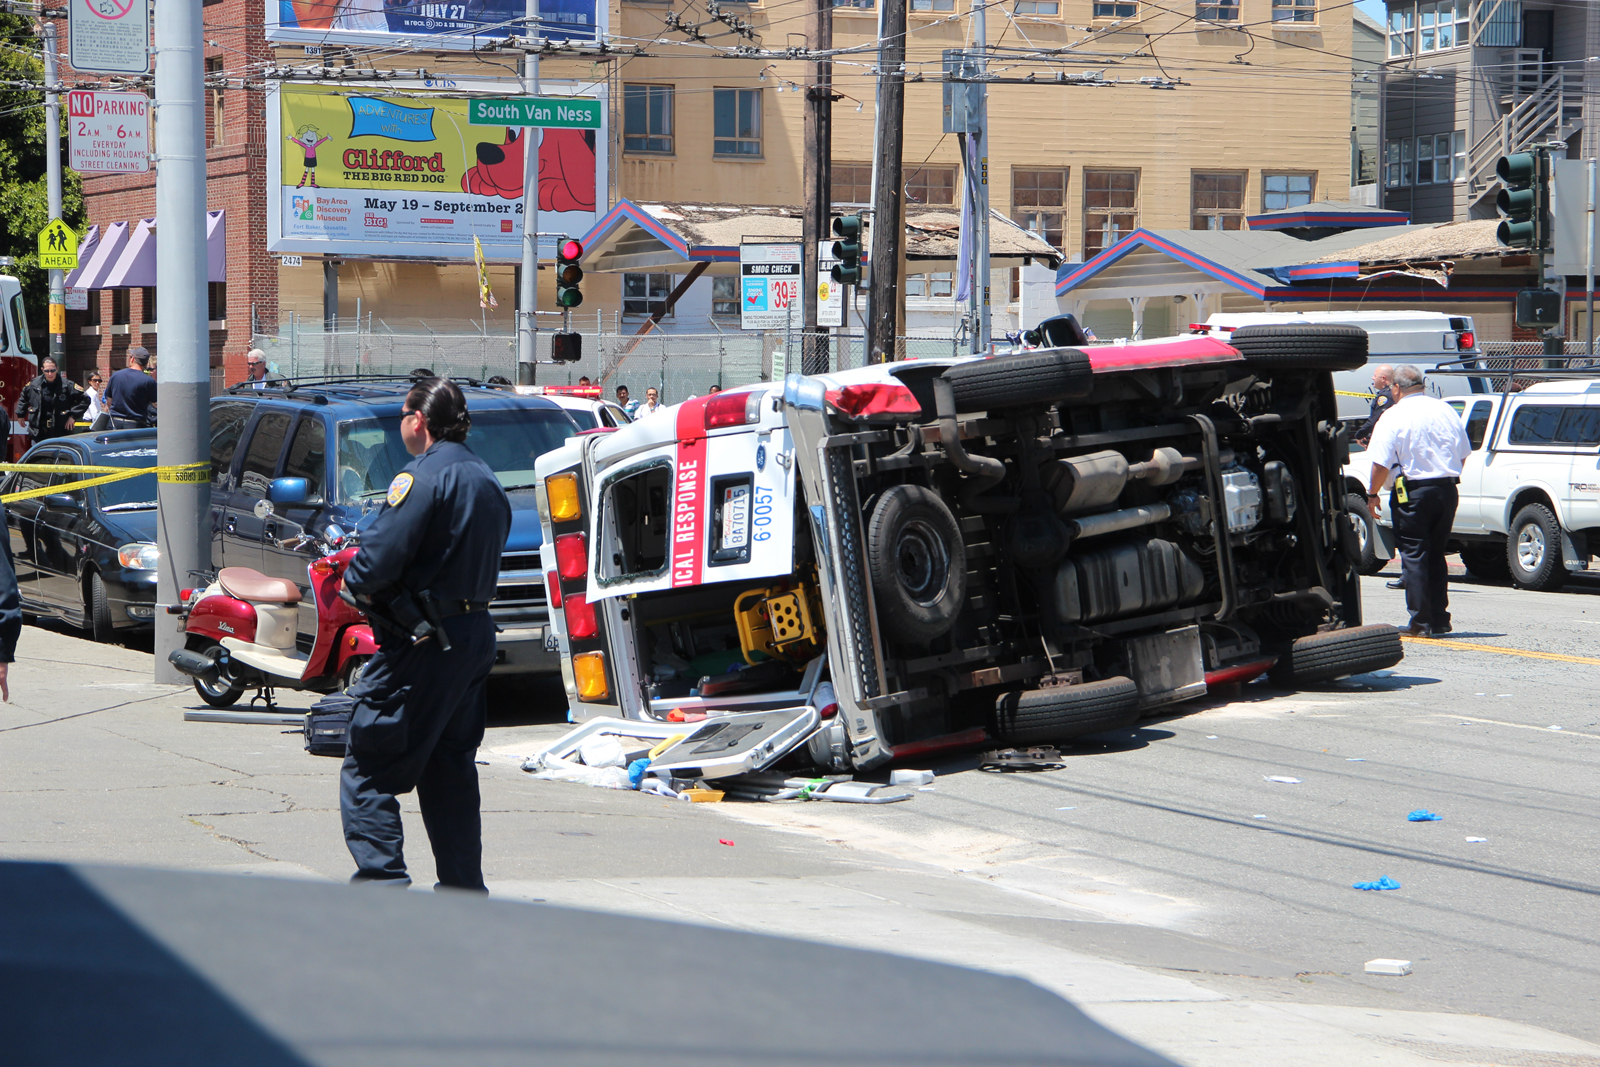 Ambulance, Car Collide on 16th and S. Van Ness